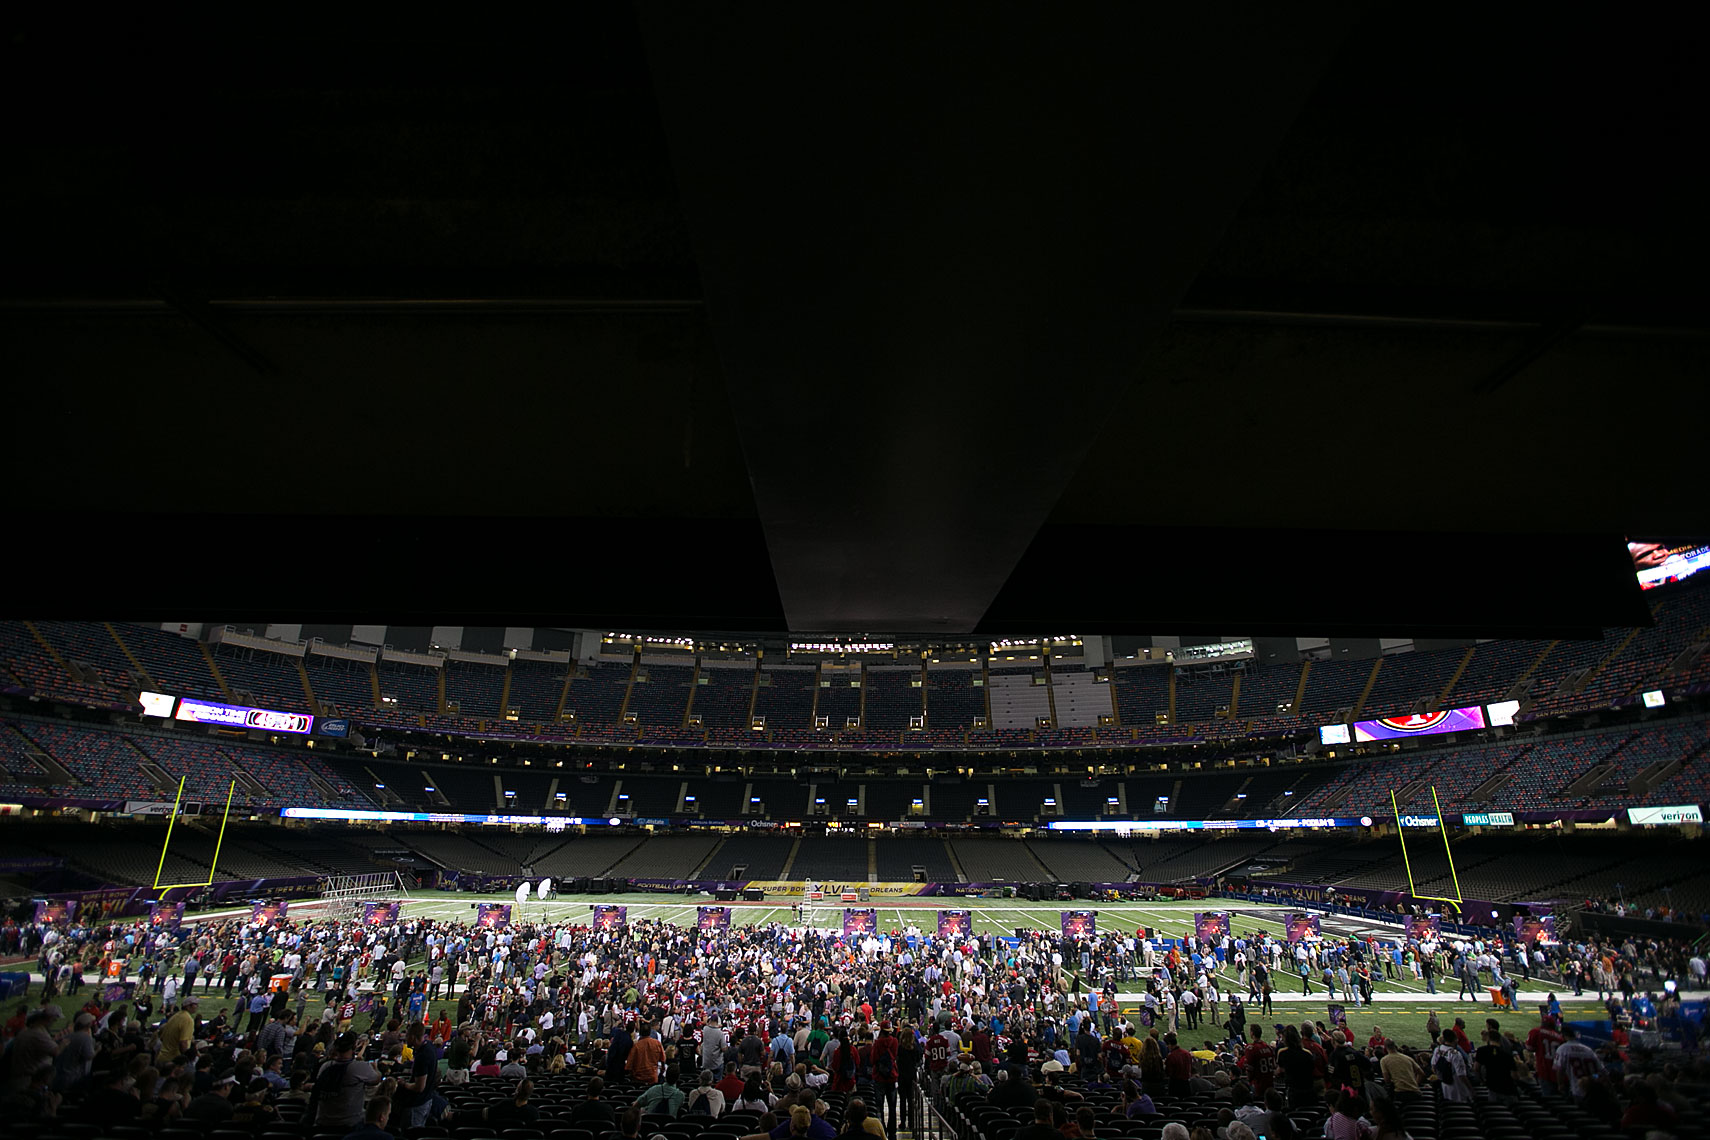 Super Bowl XLVII Media Day